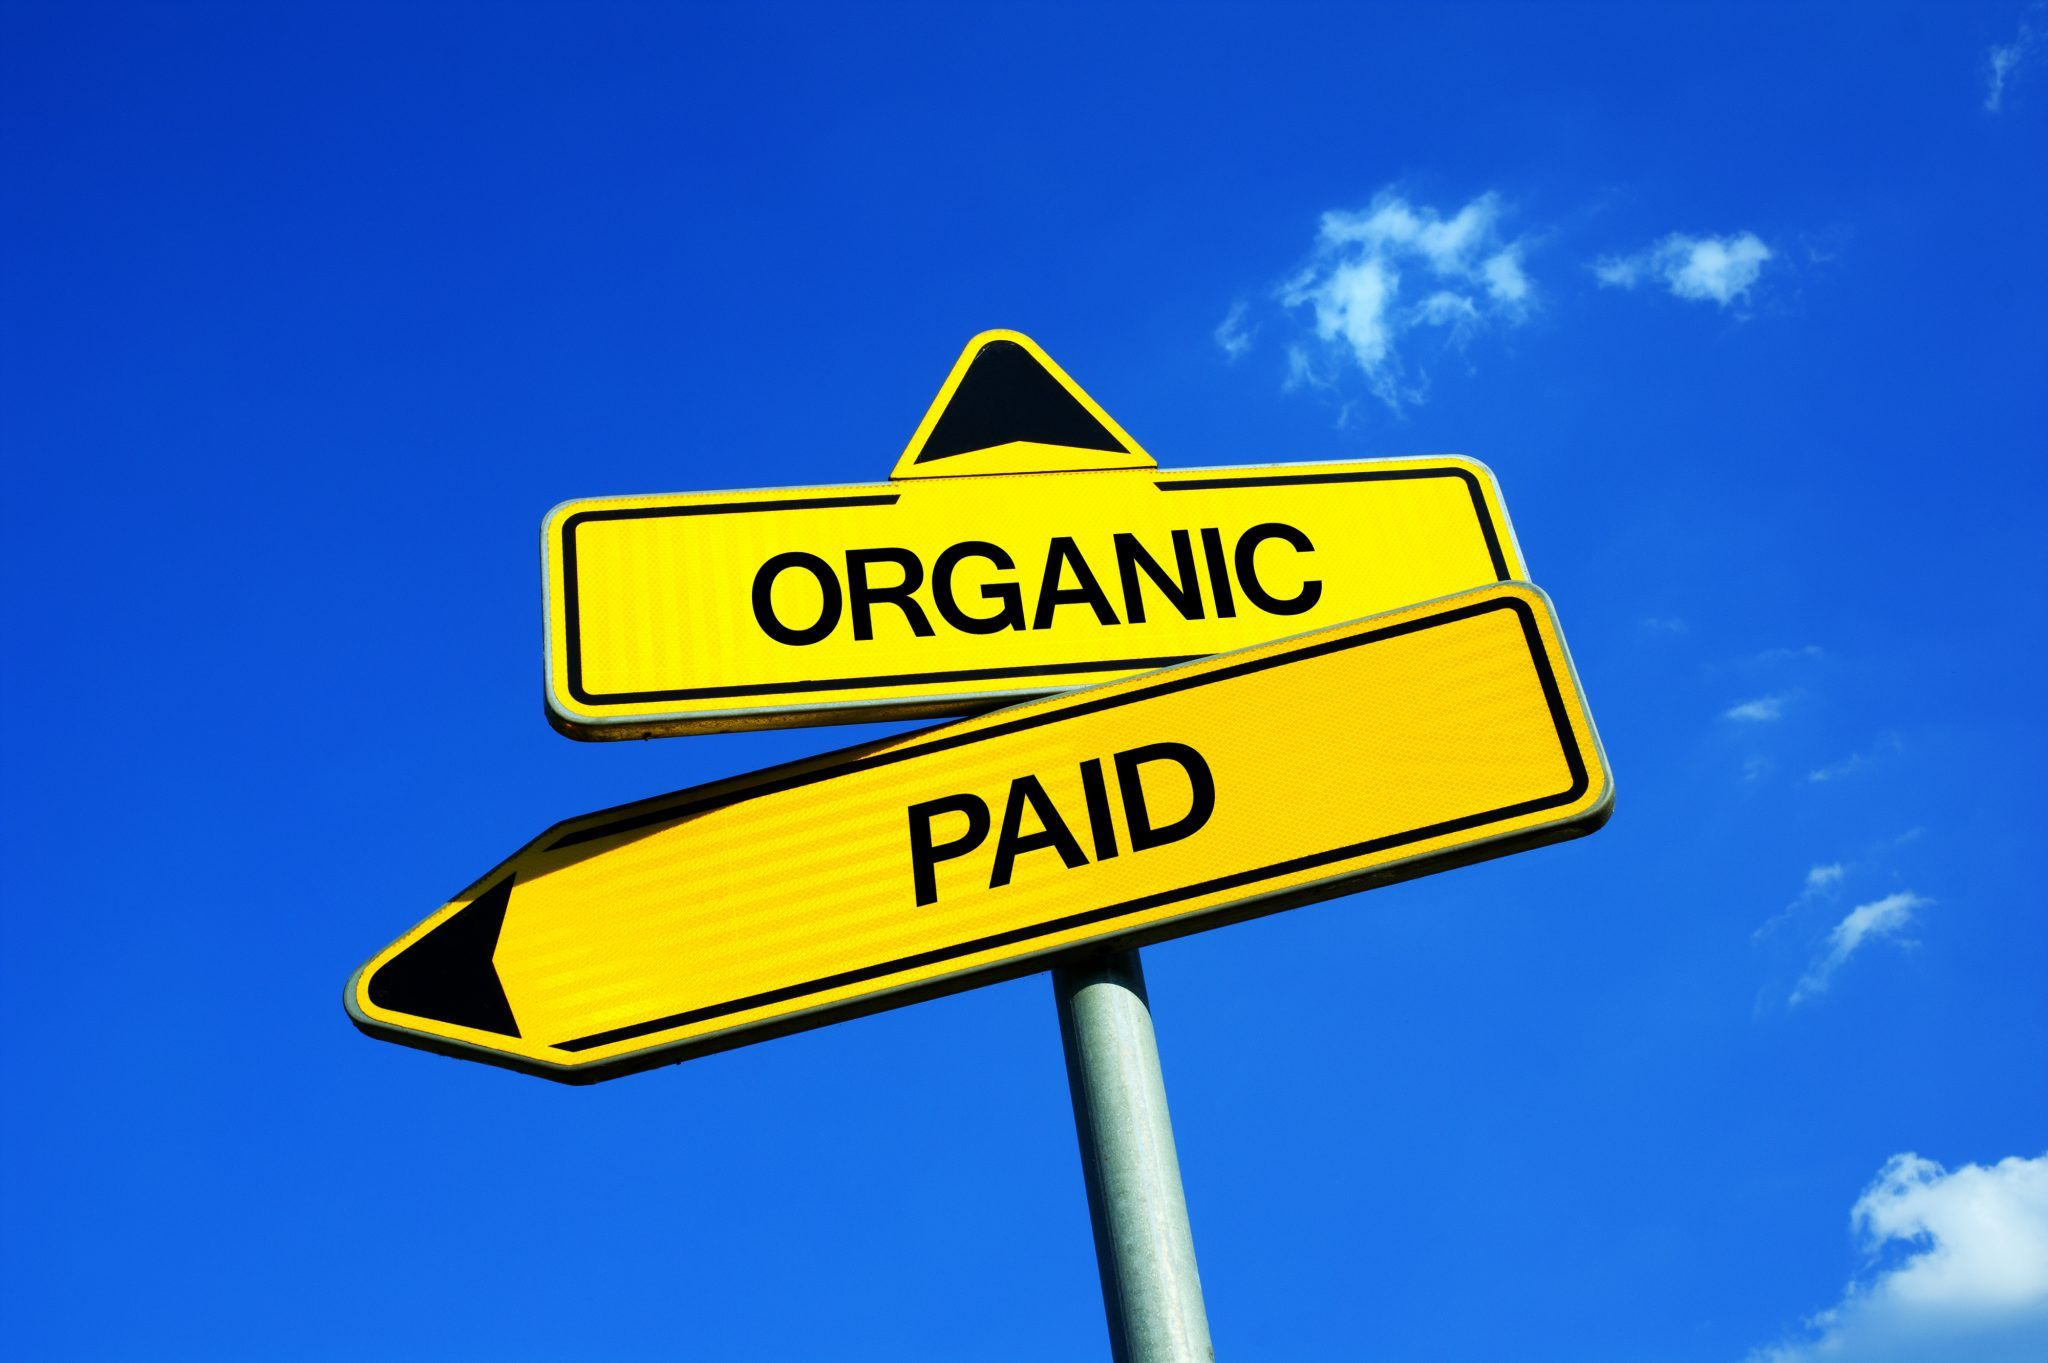 Organic & paid direction sign